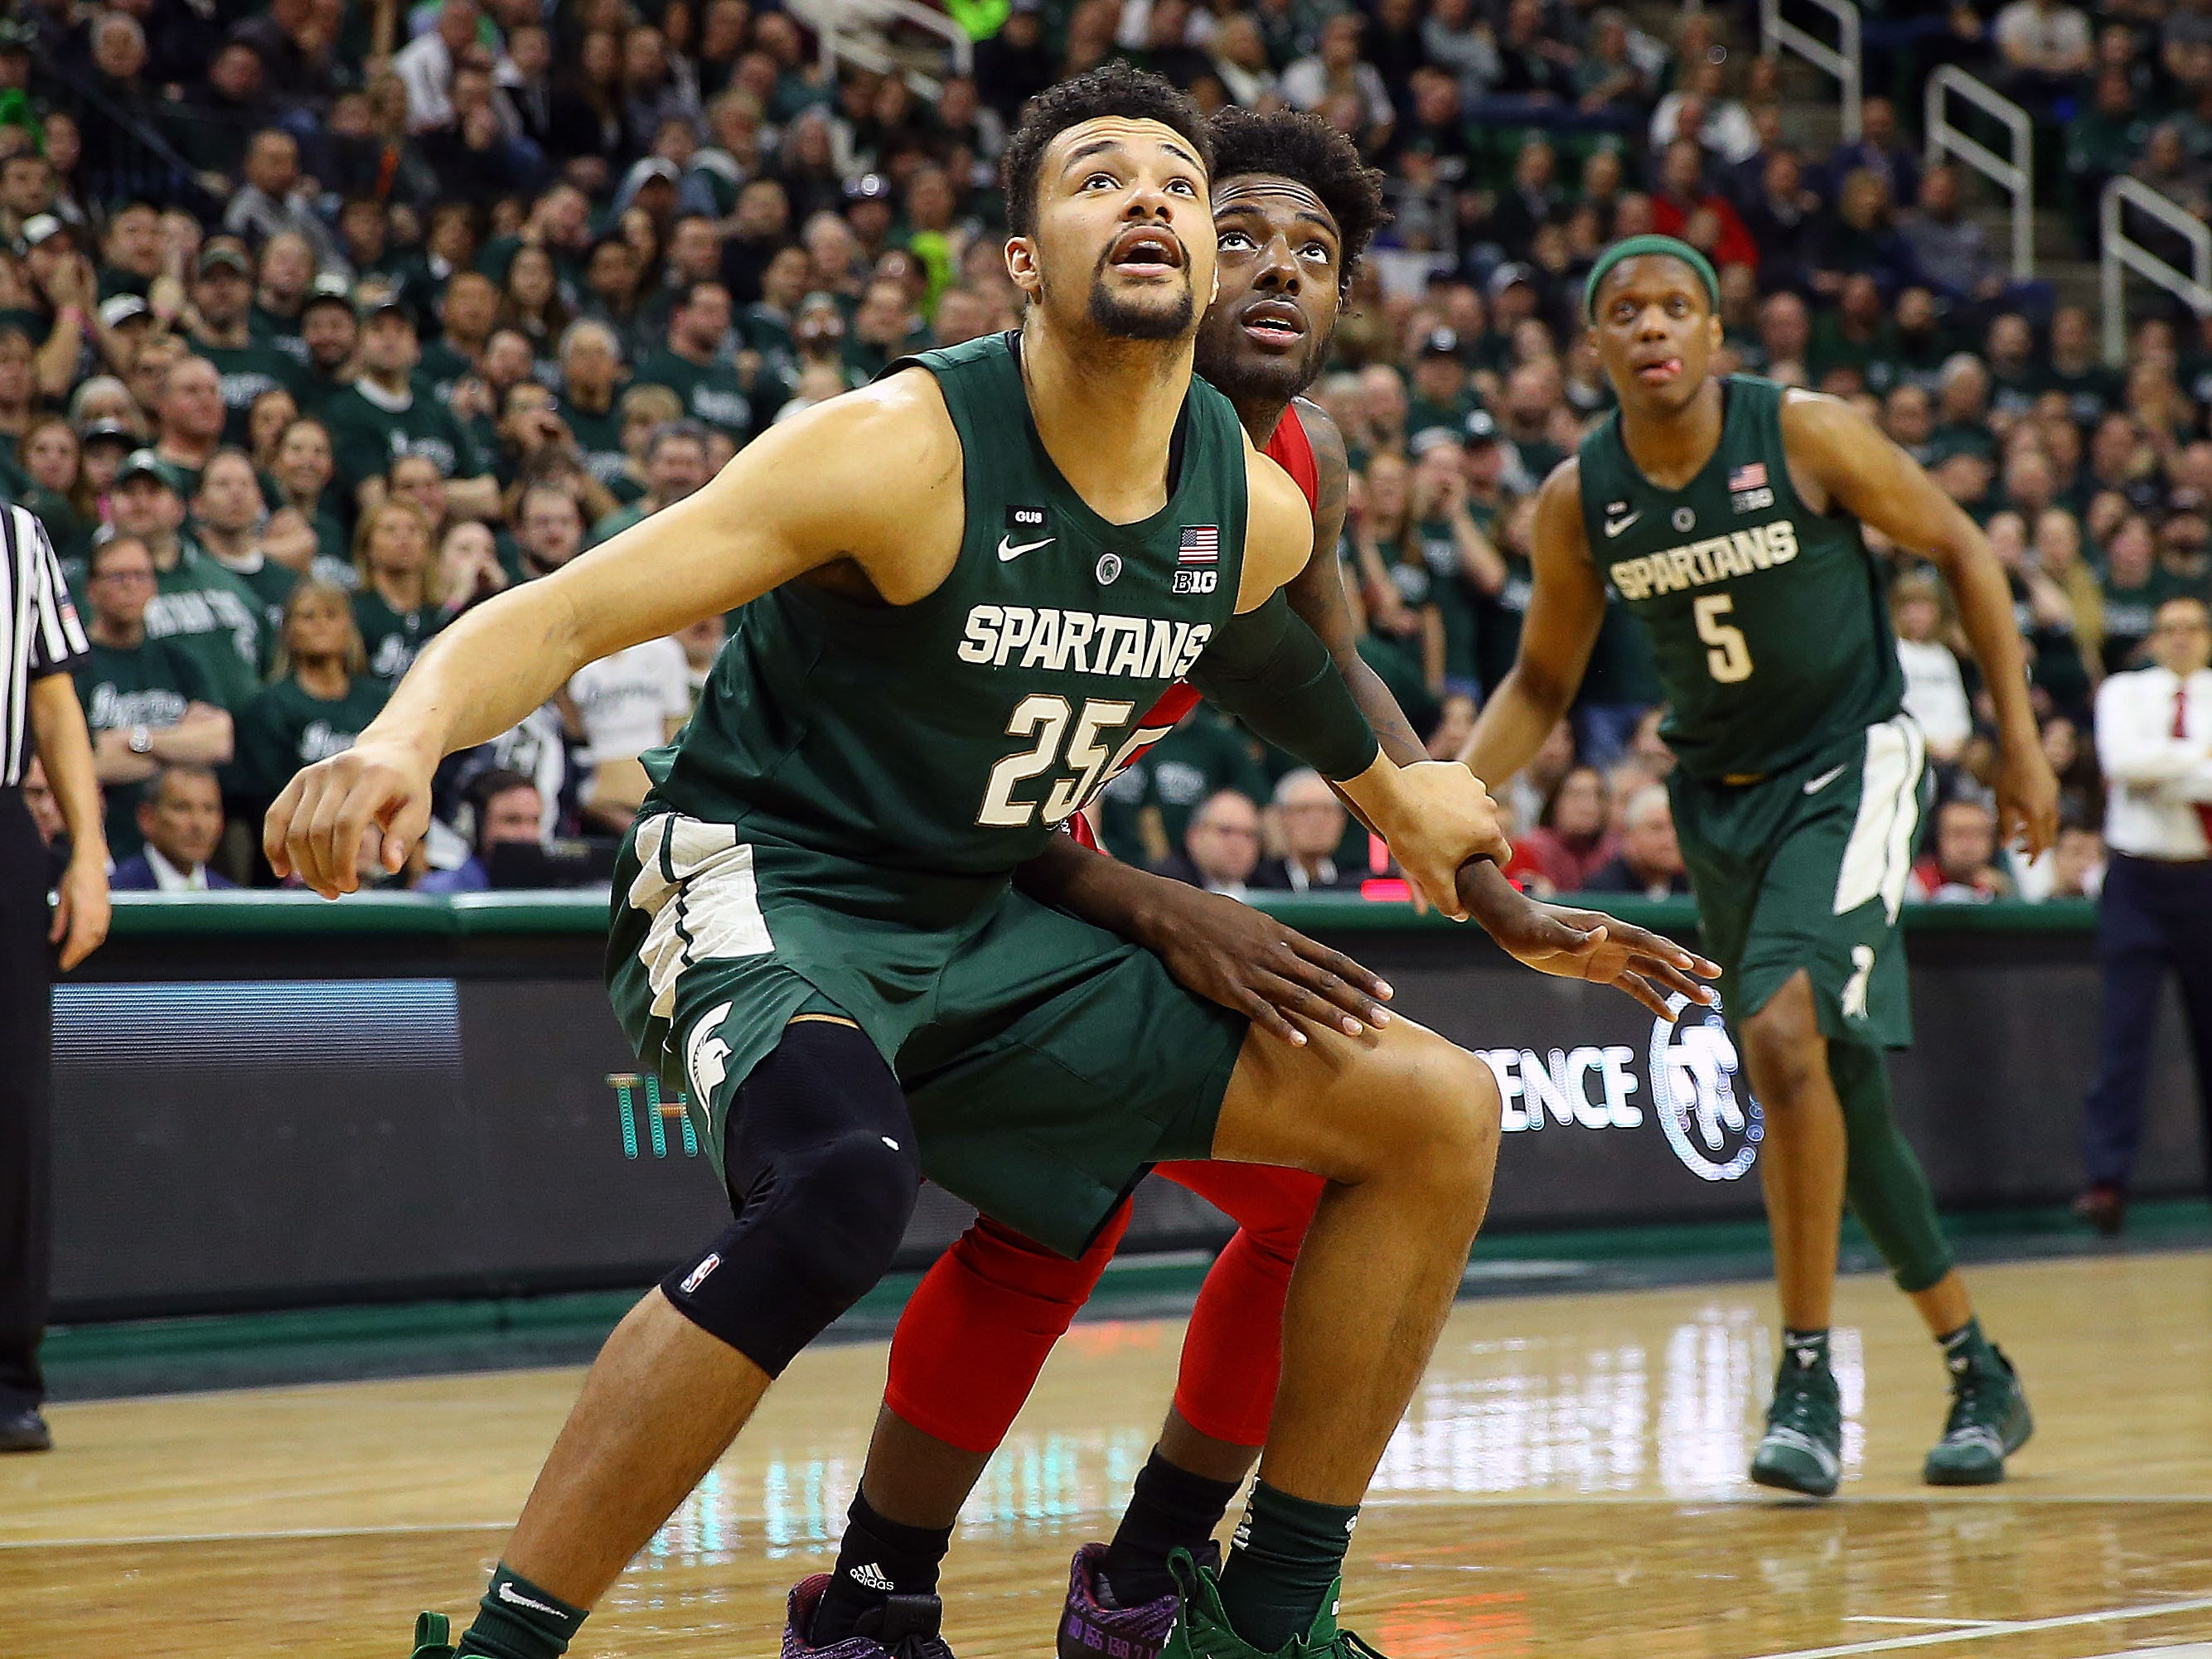 Michigan State Spartans forward Kenny Goins leads the team with 9 rebounds per game this season.